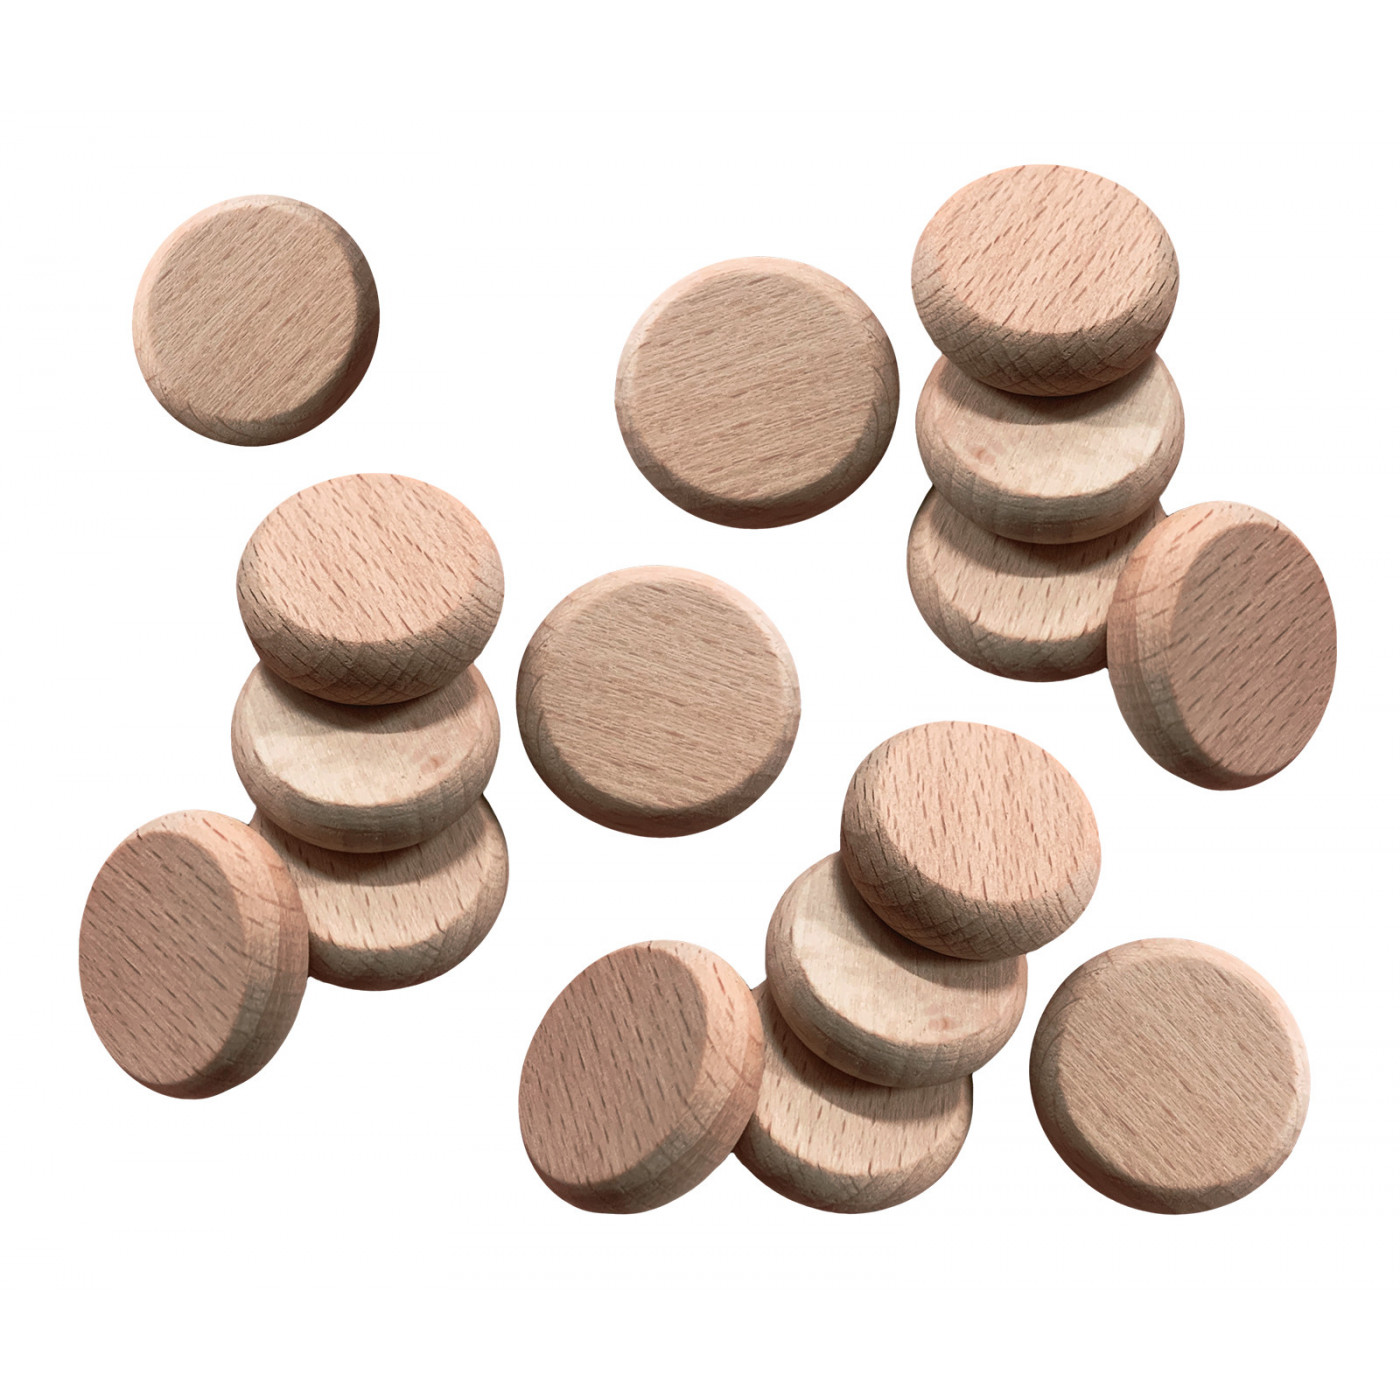 Set of 100 wooden discs (rounded edges, dia: 2.5 cm, thickness: 8 mm, beech)  - 1